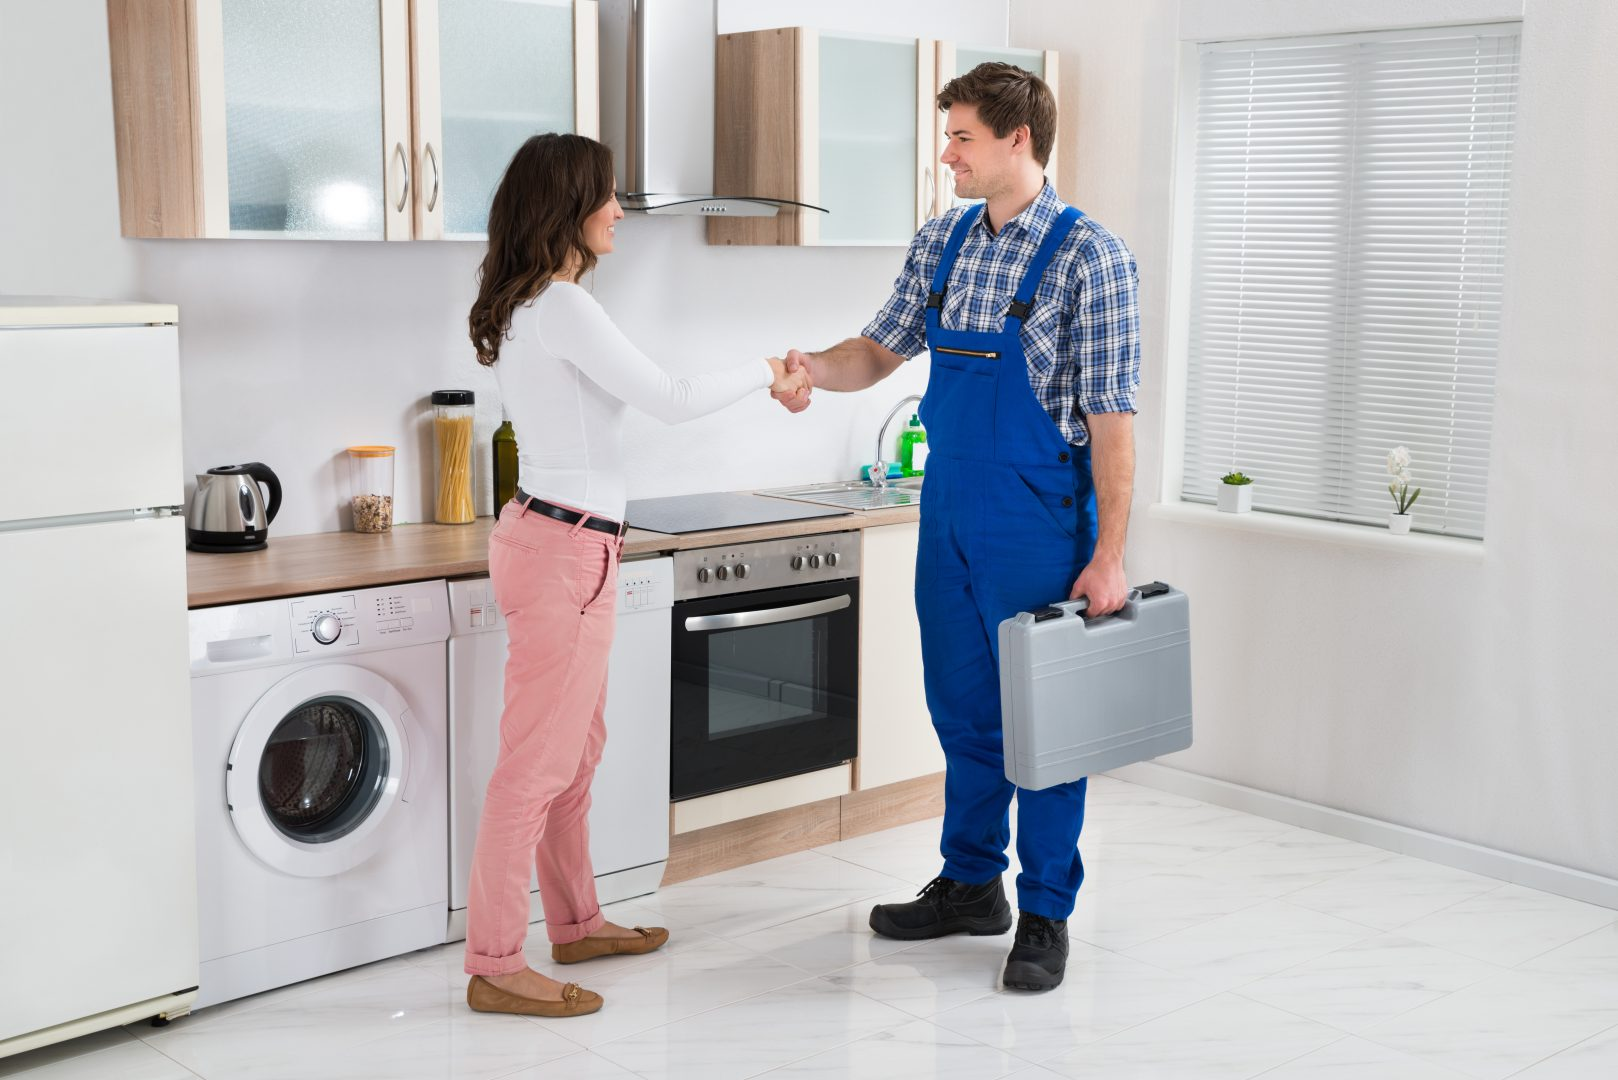 Trust Greenville Plumbing experts from Sunrise Heating & Plumbing. A plumber fixes a dishwasher, thanked by a woman.